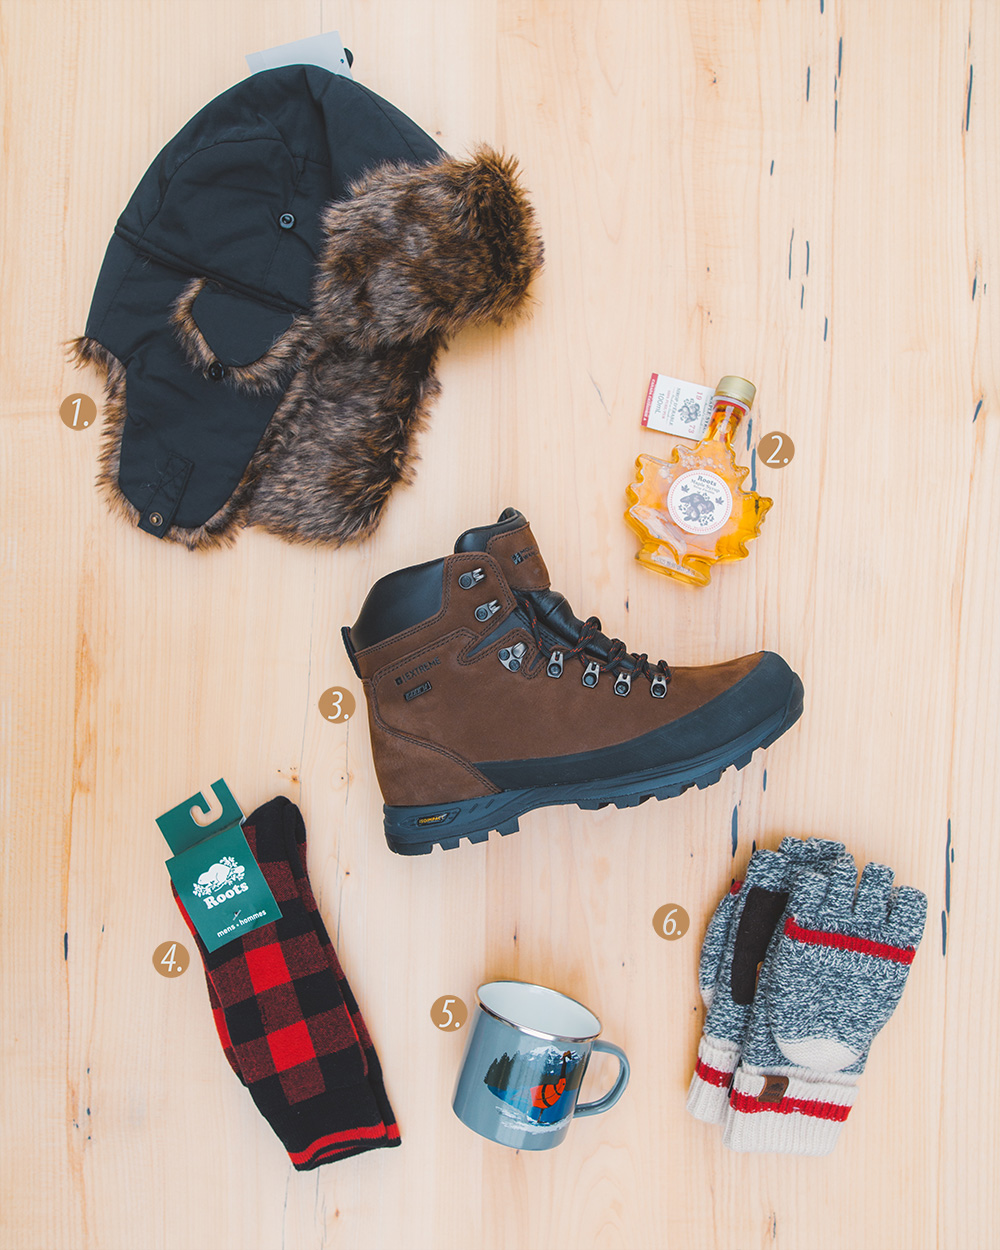 6 awesome gift ideas from Outlet Collection for even the pickiest on your list